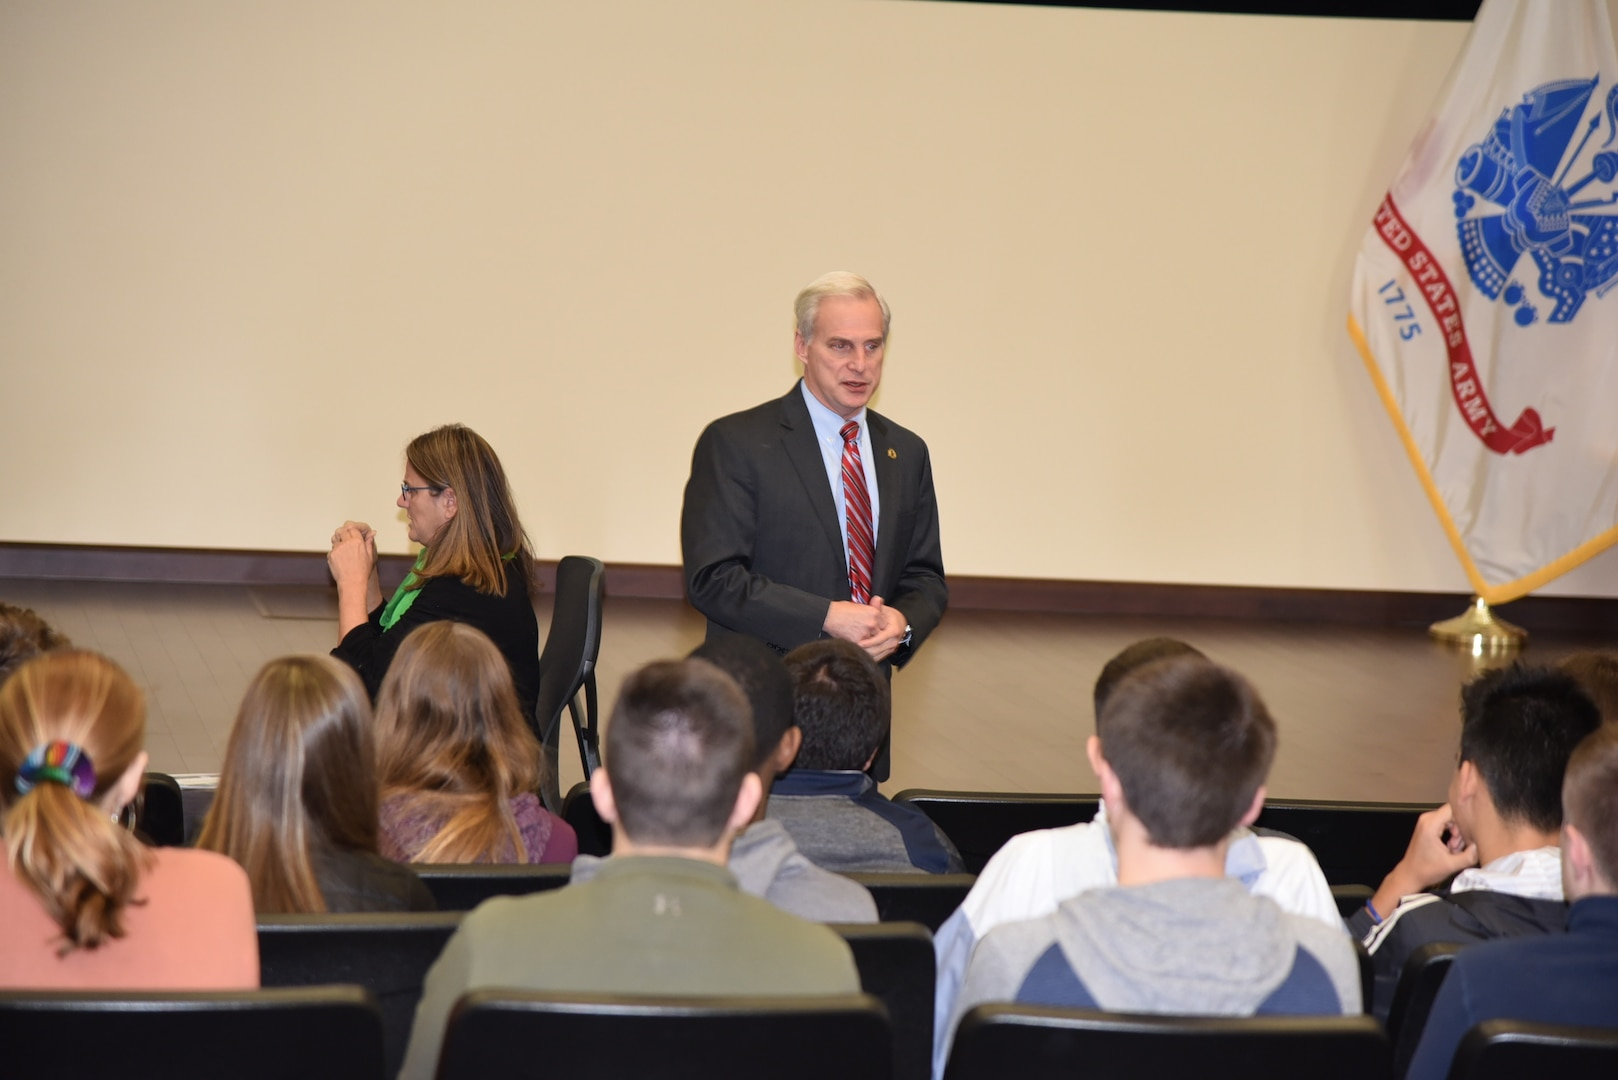 Central York high school students visit teacher's former employer to learn logistics